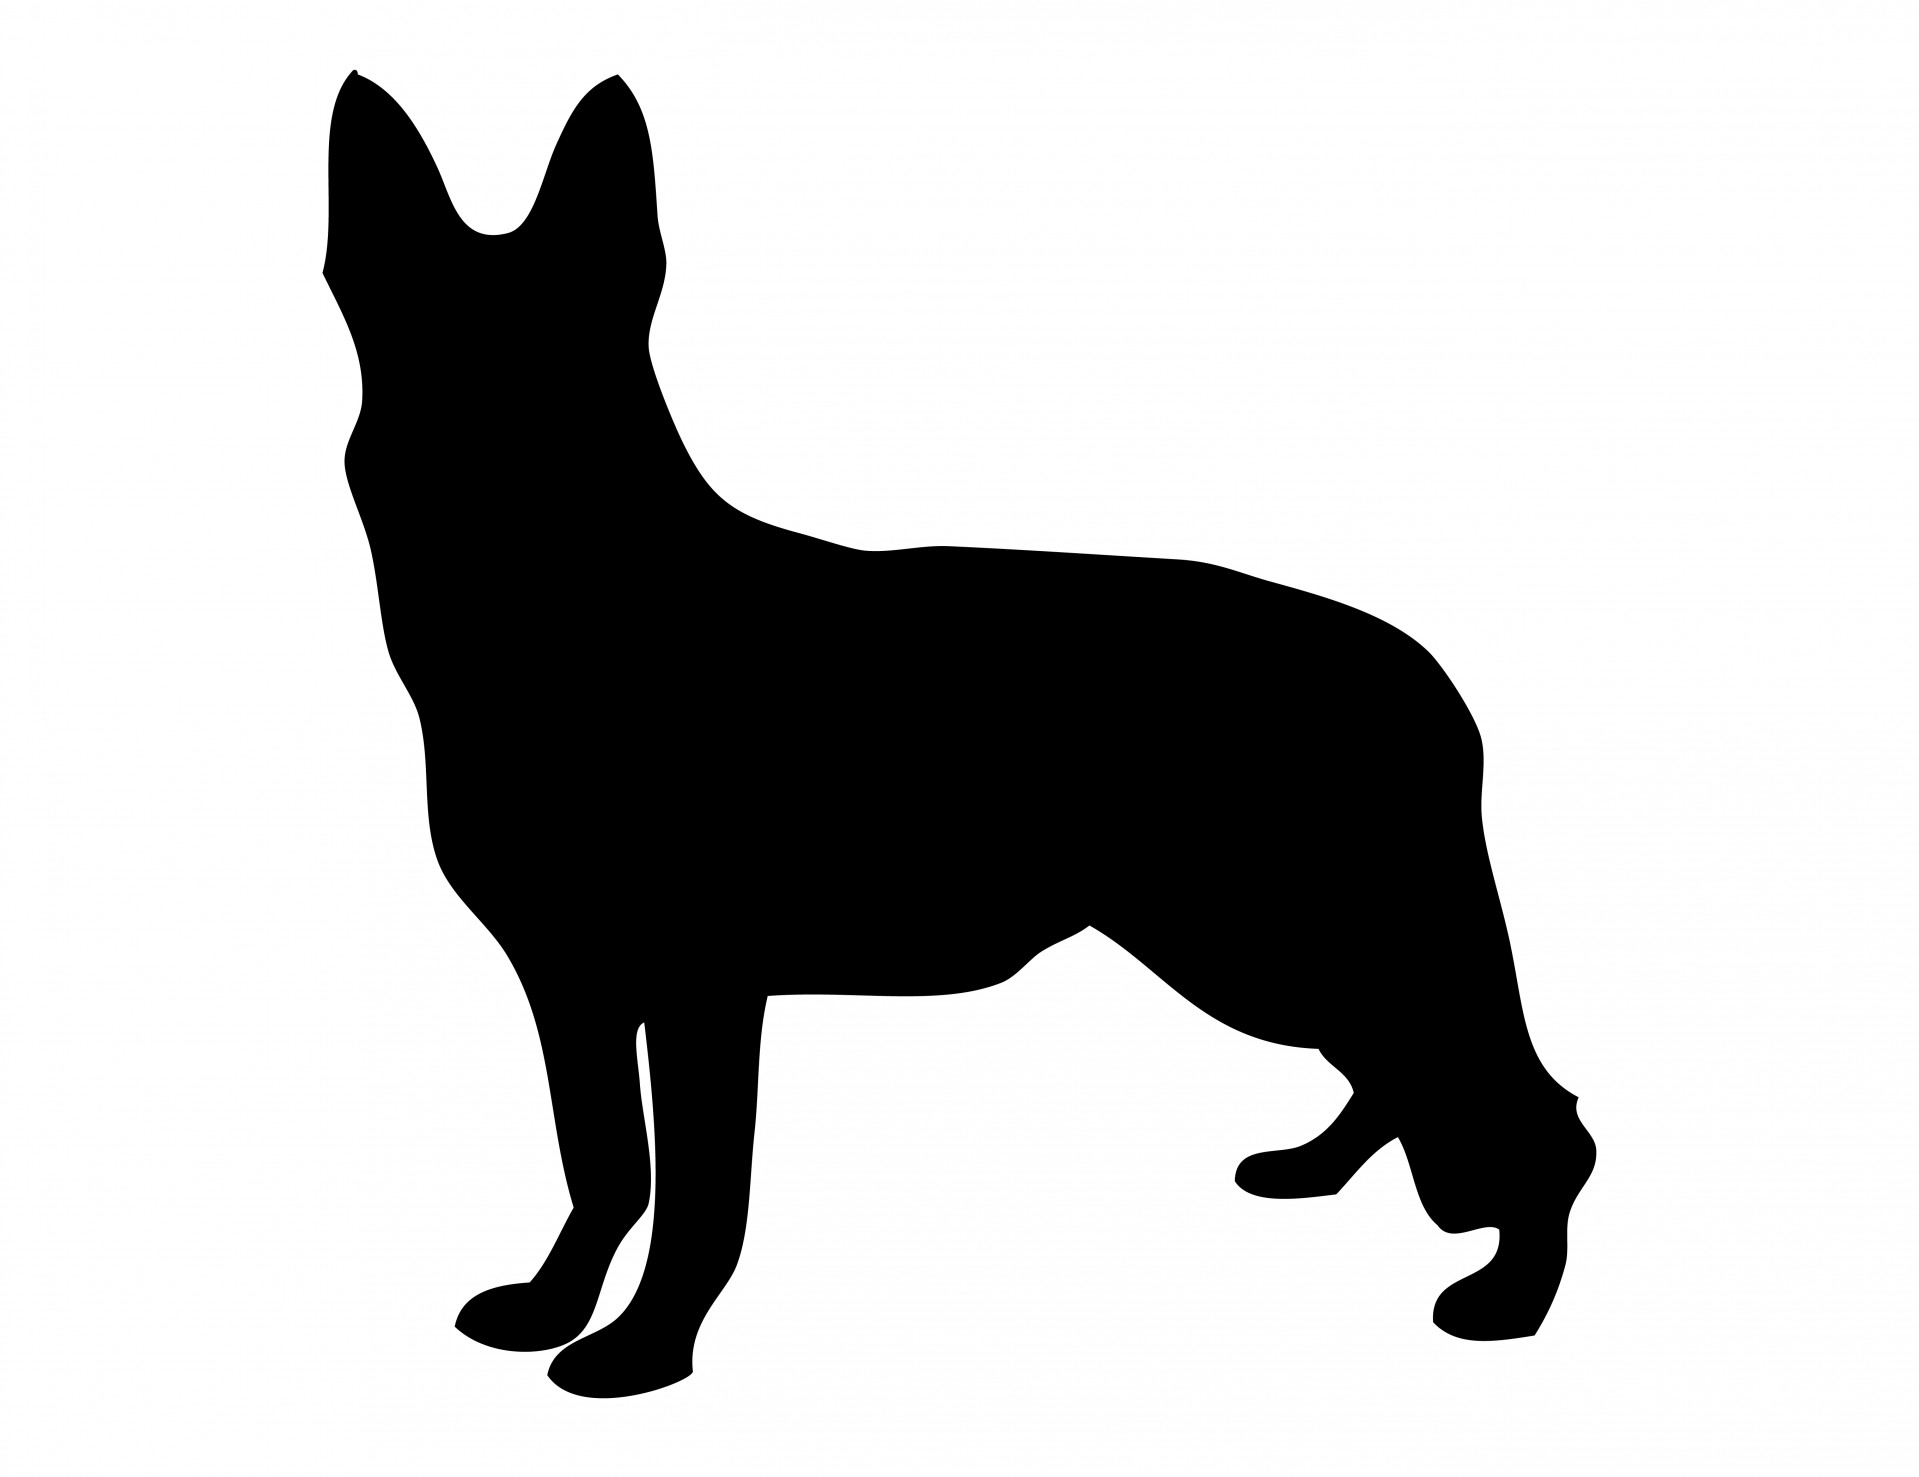 Dog Paw Silhouette at GetDrawings com | Free for personal